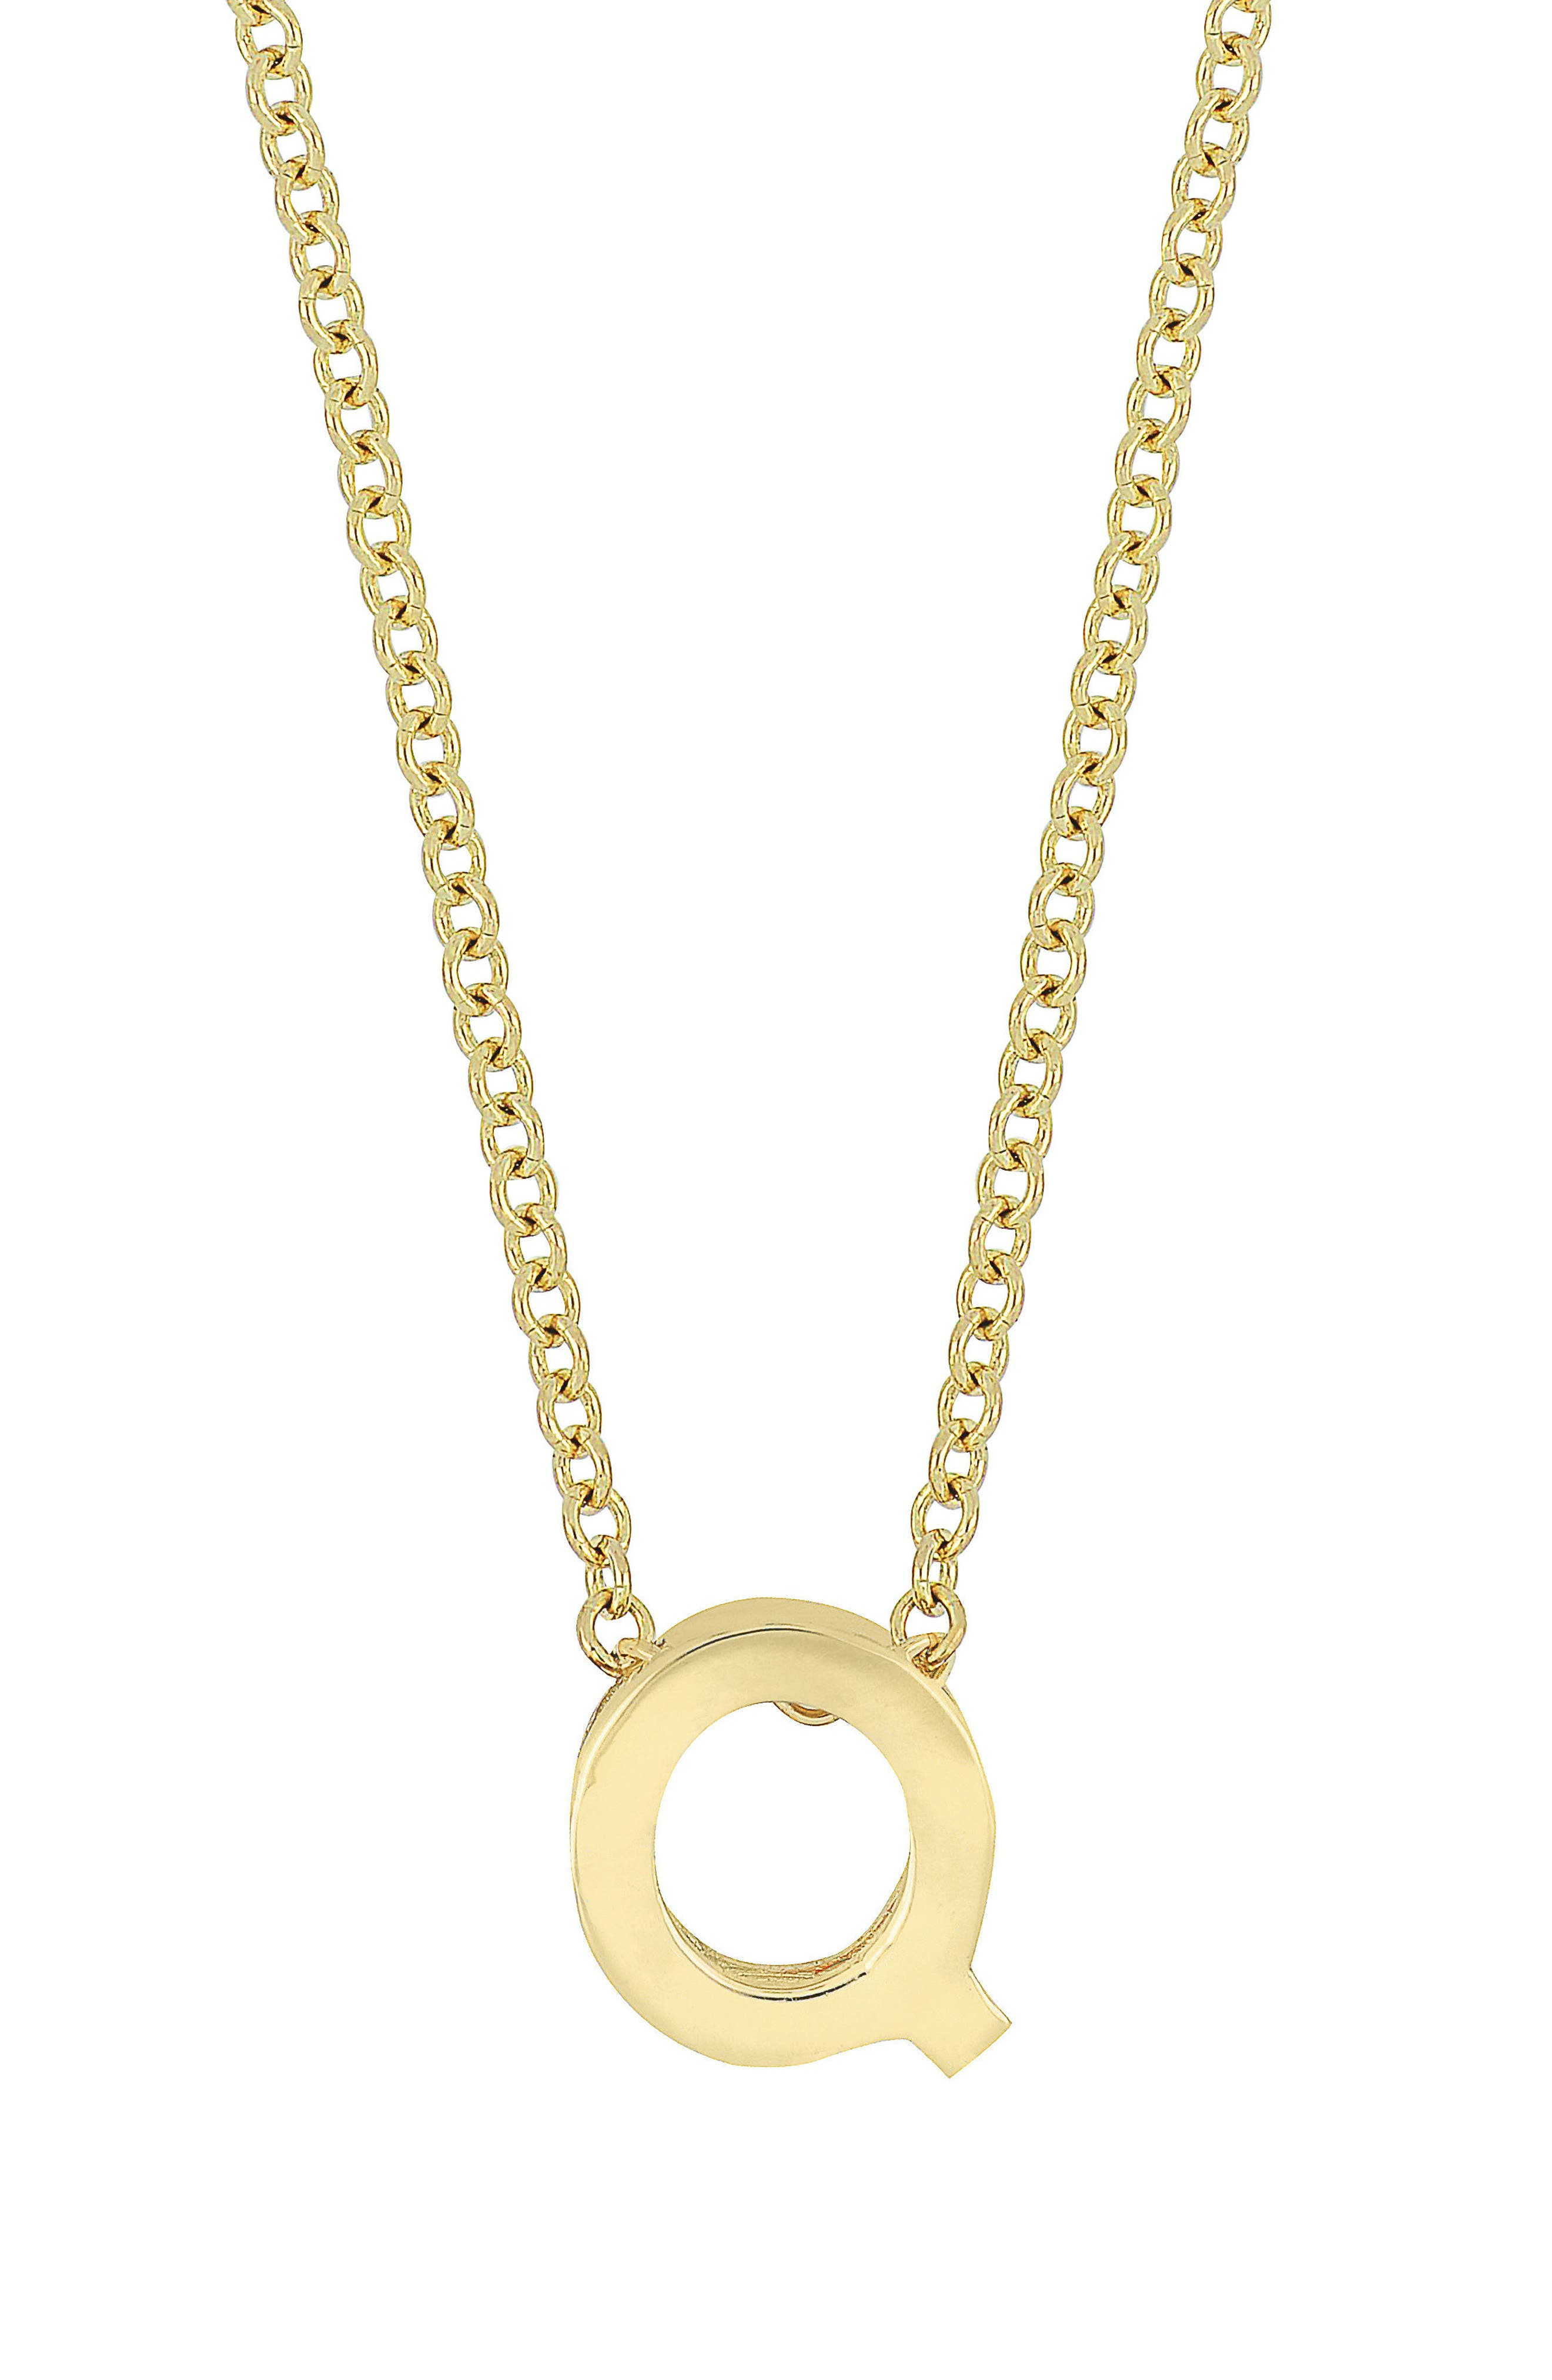 14K Gold Initial Pendant Necklace